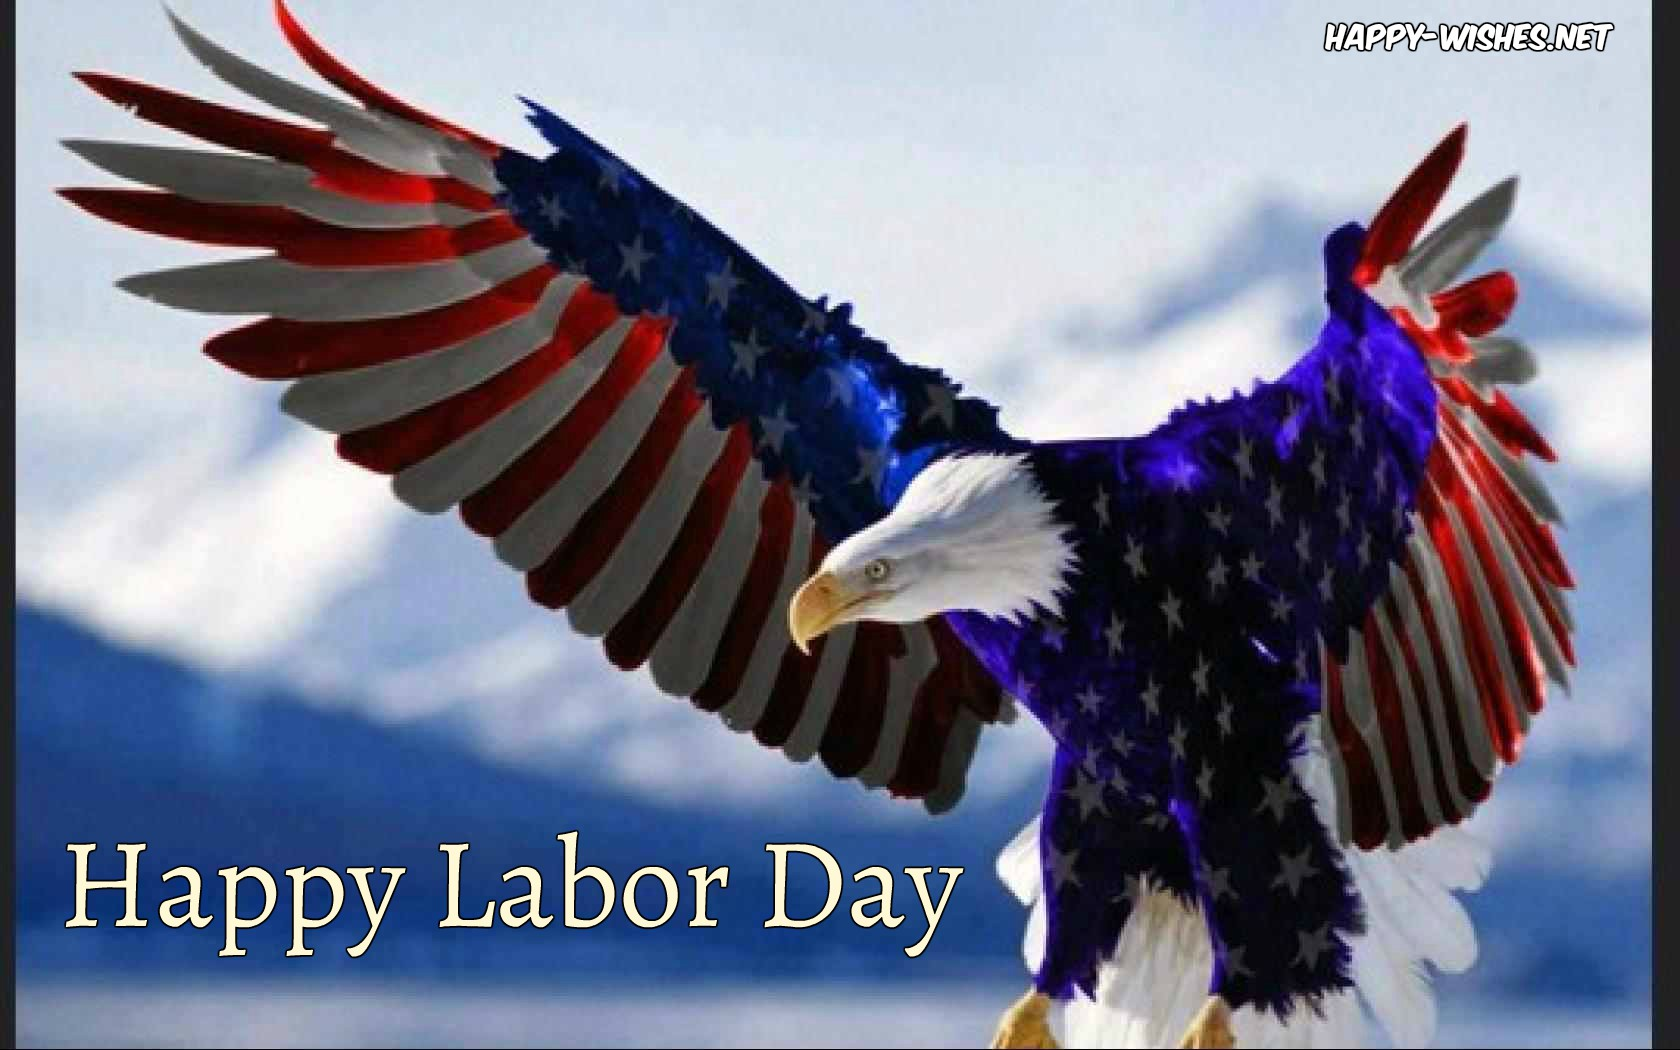 Happy Labor Day 2019 Images